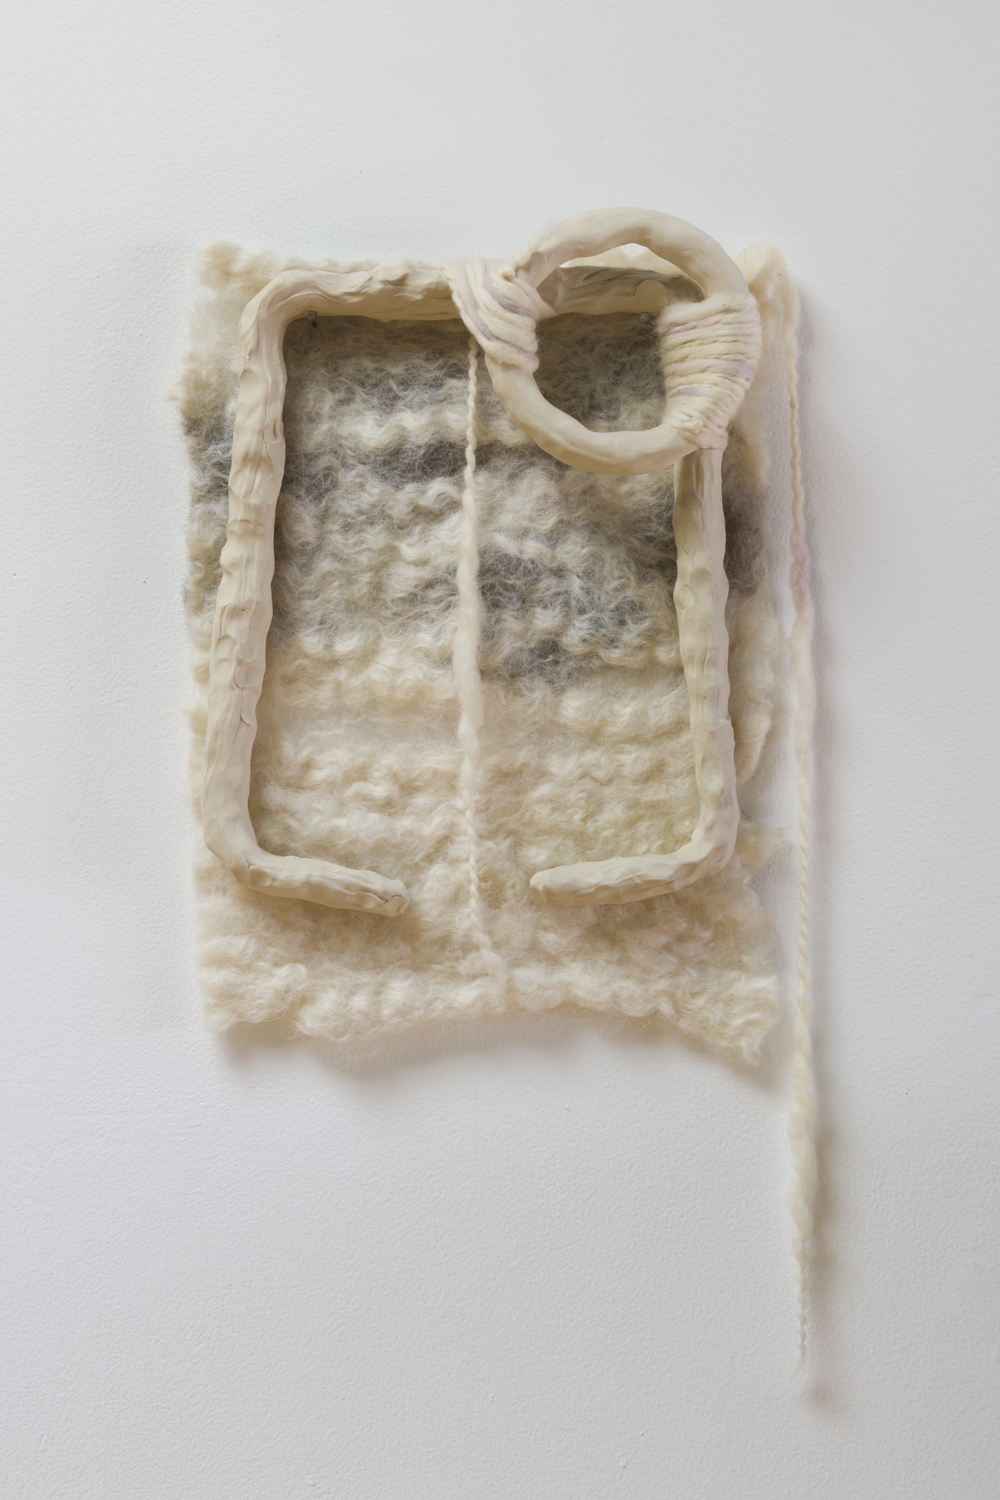 Ariel Herwitz  elements of joy , 2017 felted wool, hand-dyed yarn, porcelain, copper thread 20 x 10 x 2 in.